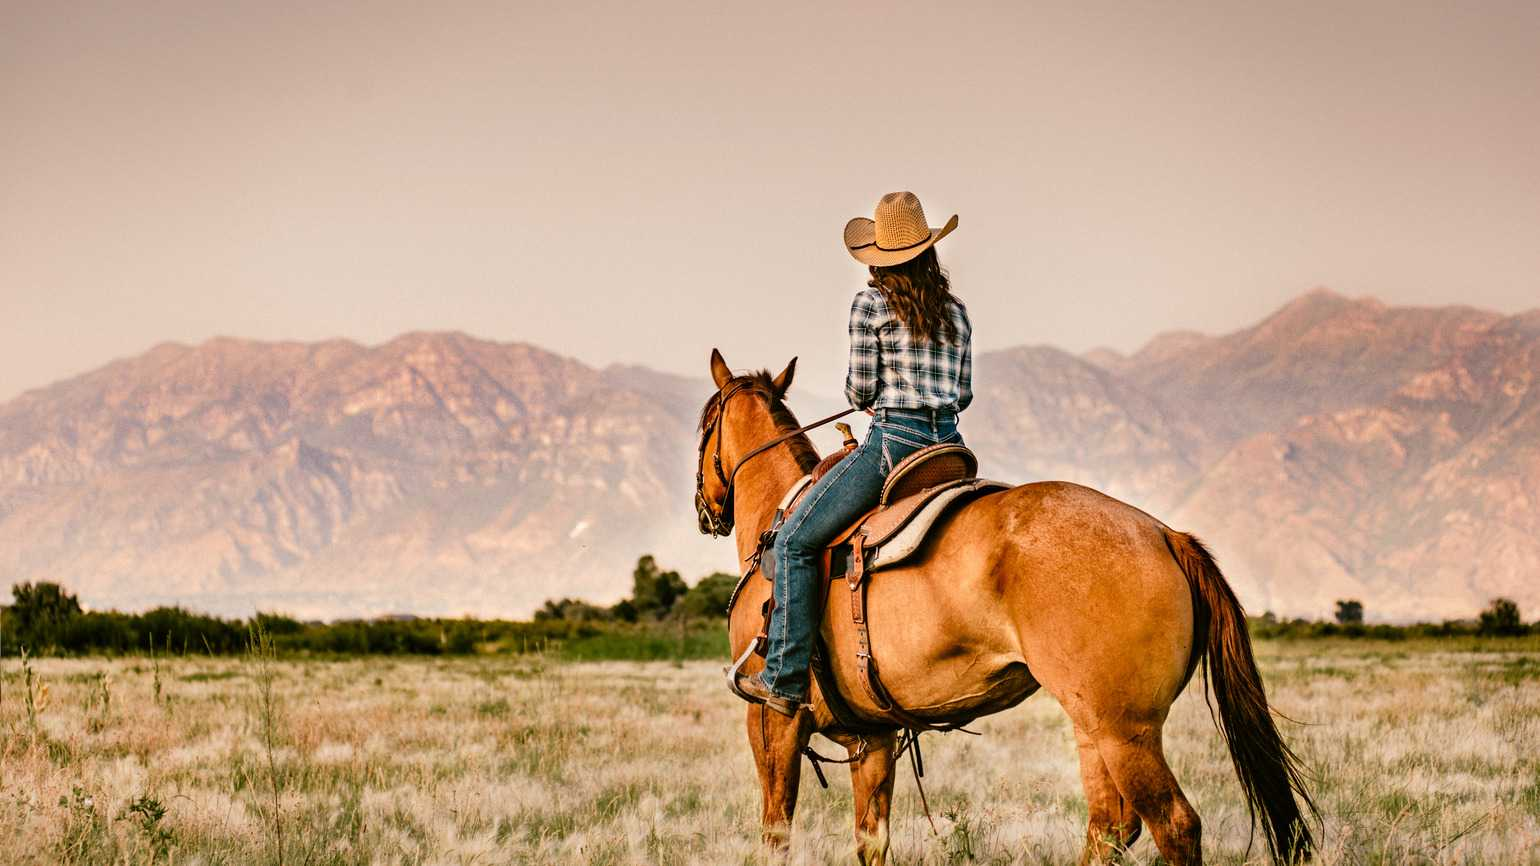 Woman Horseback Riding at Sunset (Getty Images)